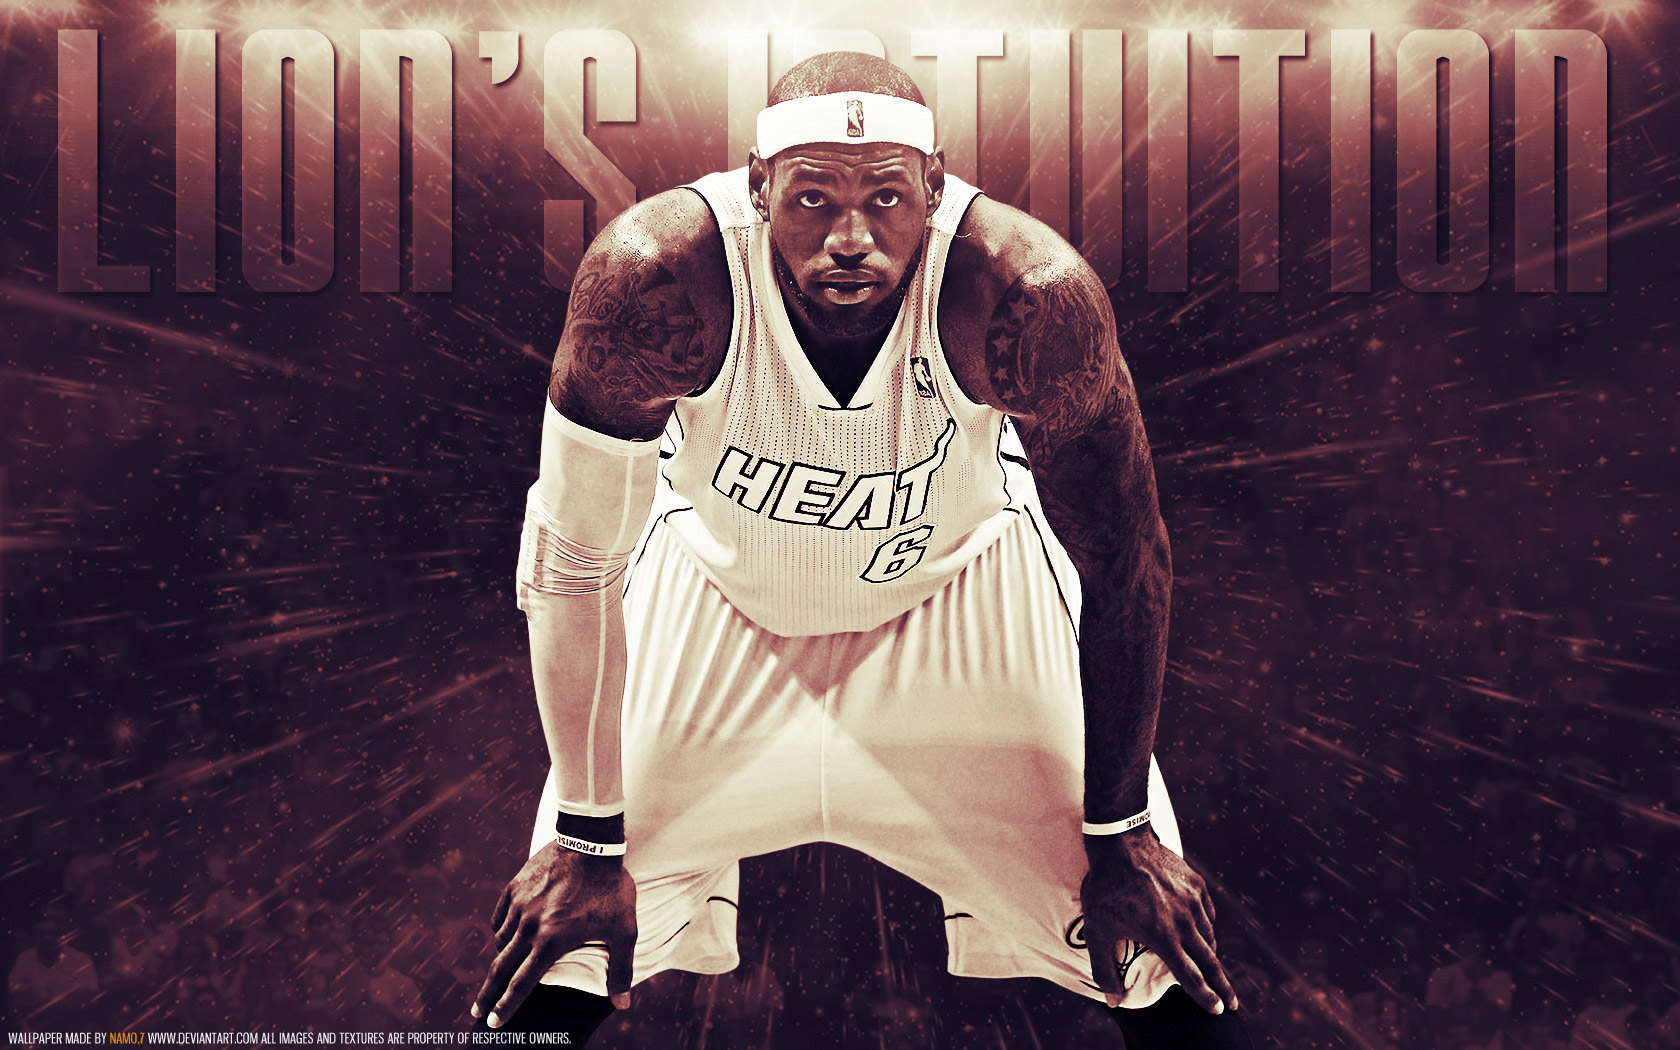 Lebron James 2013 Nba Playoffs 1680 1050 Wallpaper Basketball